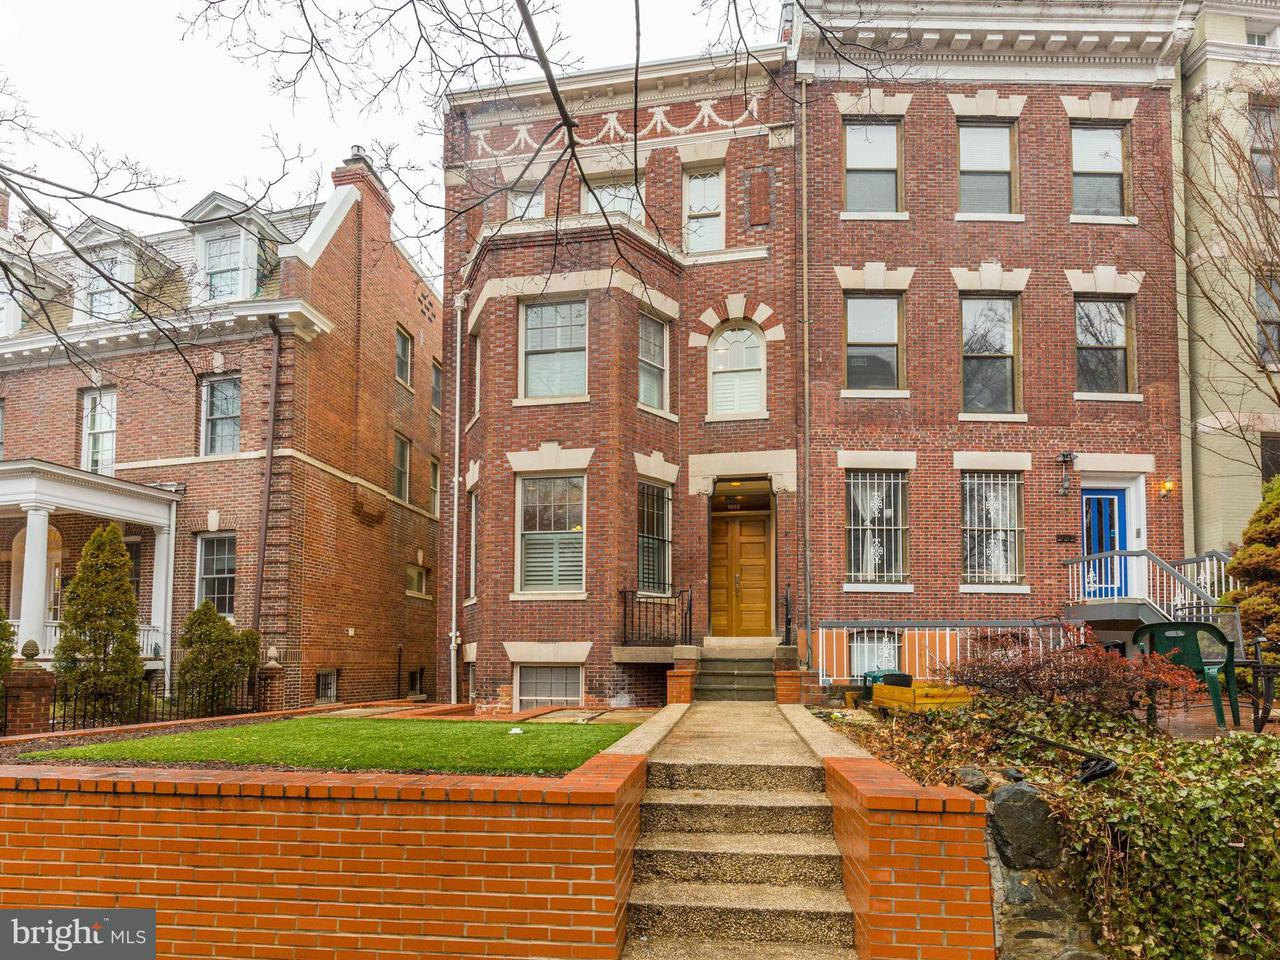 Multi-Family Home for Sale at 1953 Biltmore St Nw 1953 Biltmore St Nw Washington, District Of Columbia 20009 United States